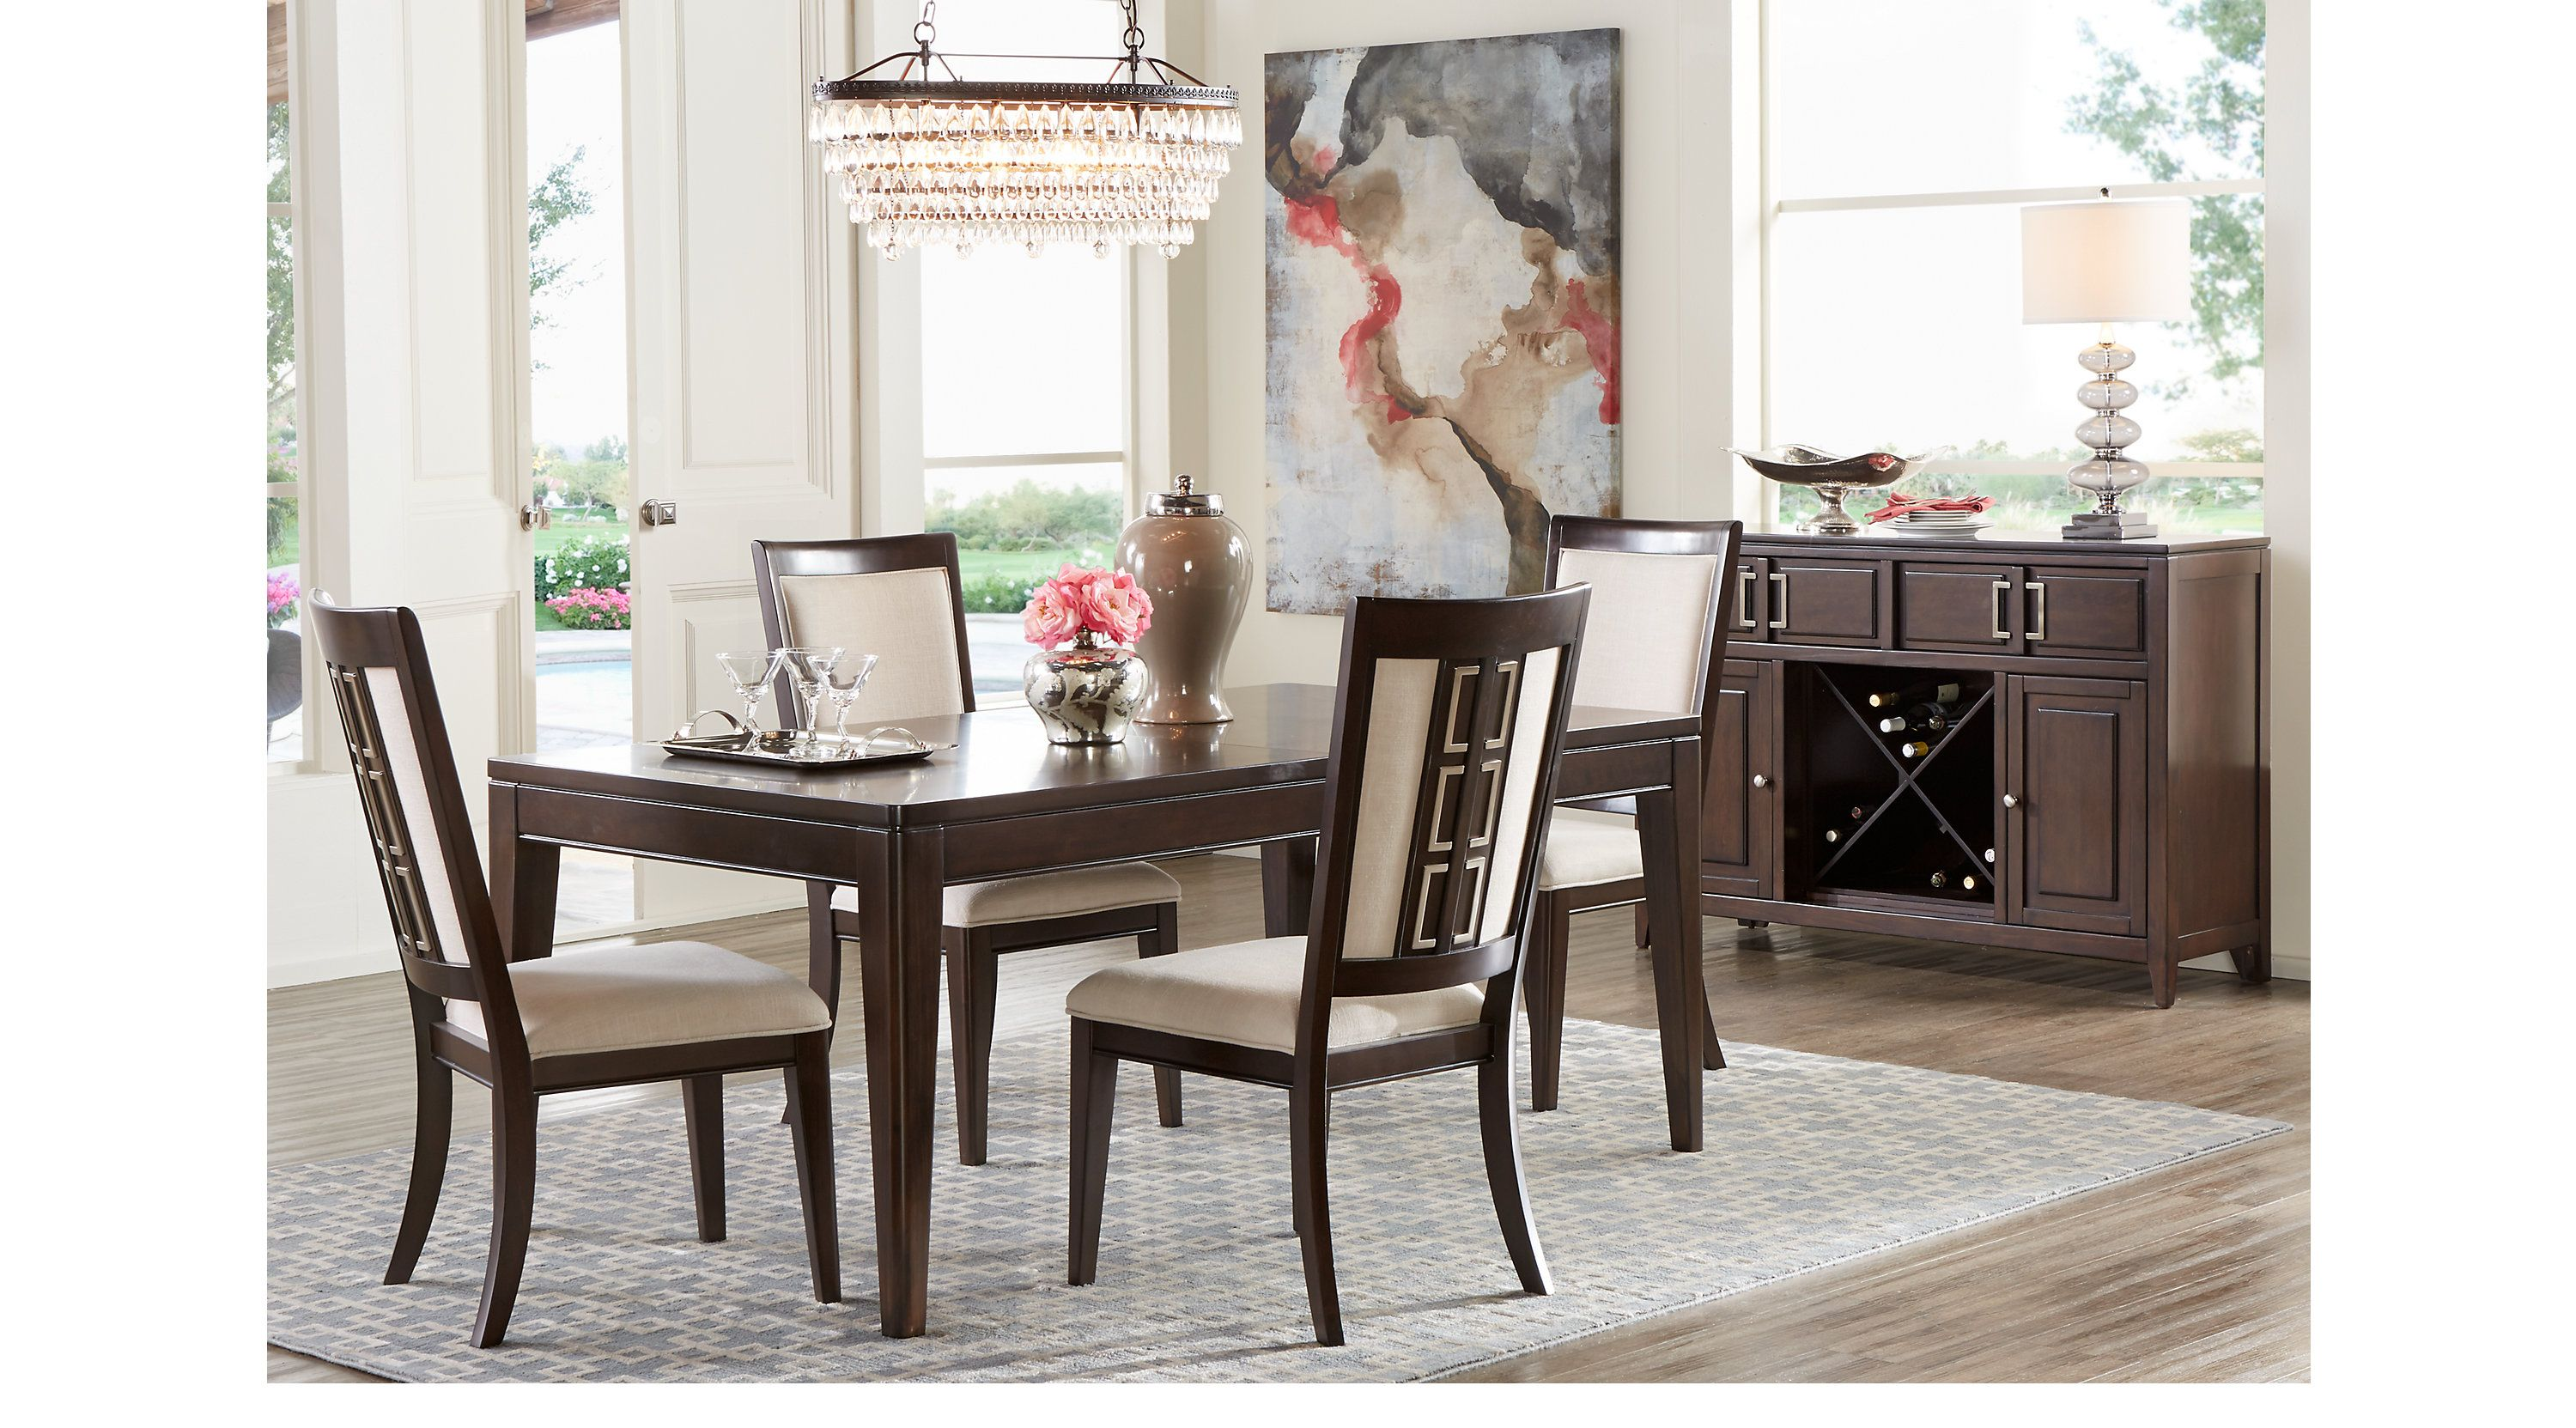 Sofia Vergara Santa Clarita Dark Cherry 5 Pc Dining Room